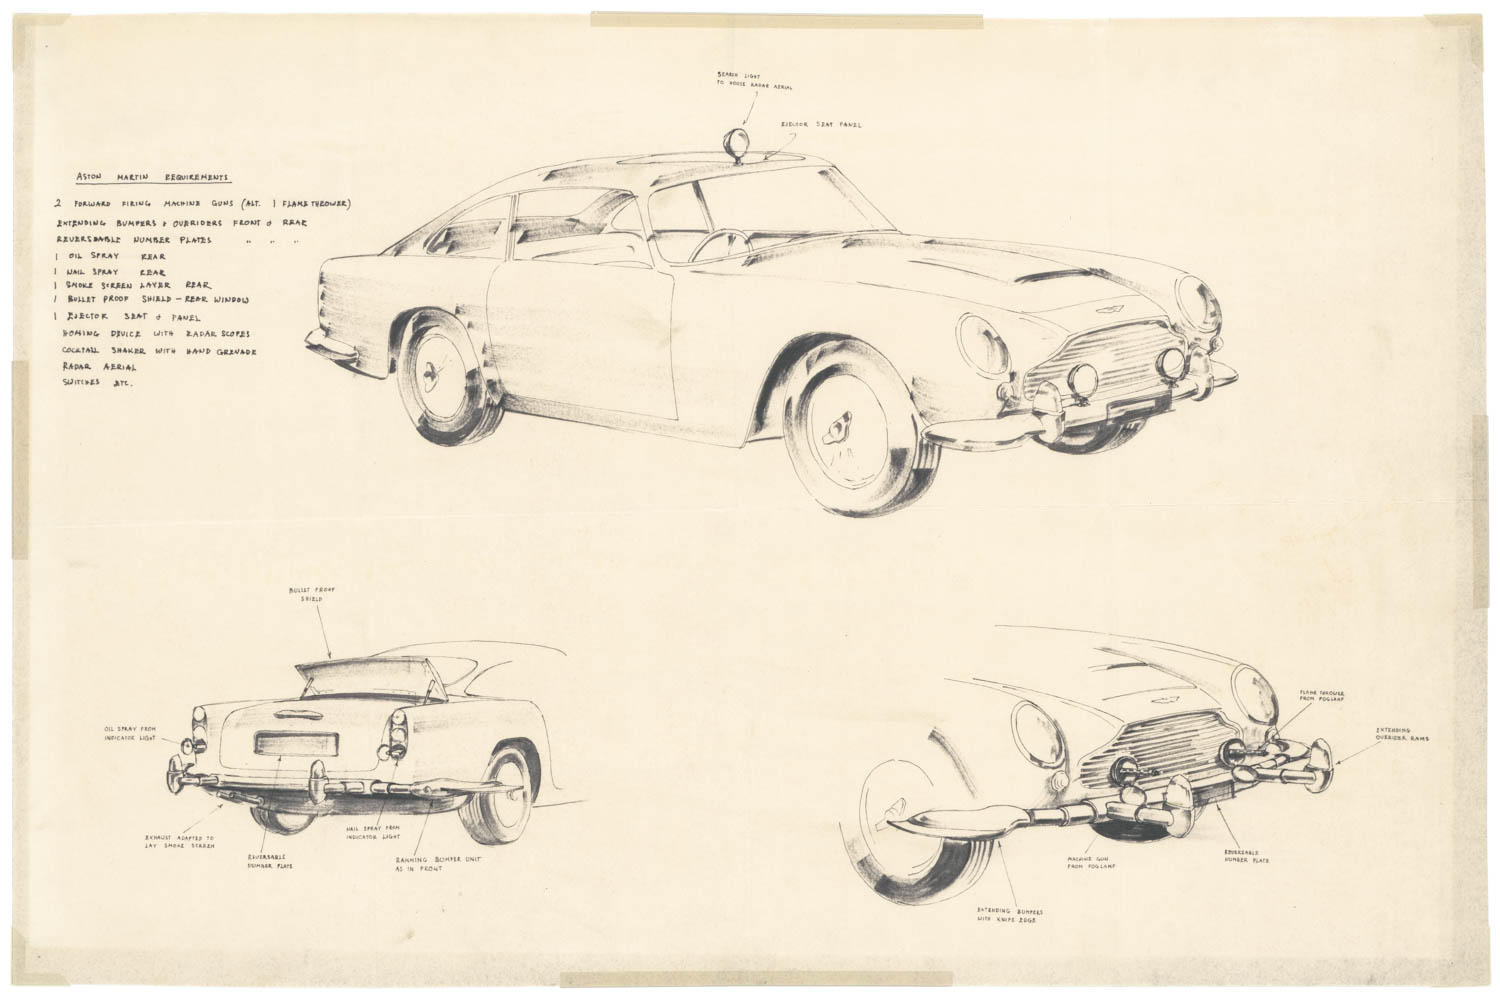 Goldfinger DB5 stunt car sketch